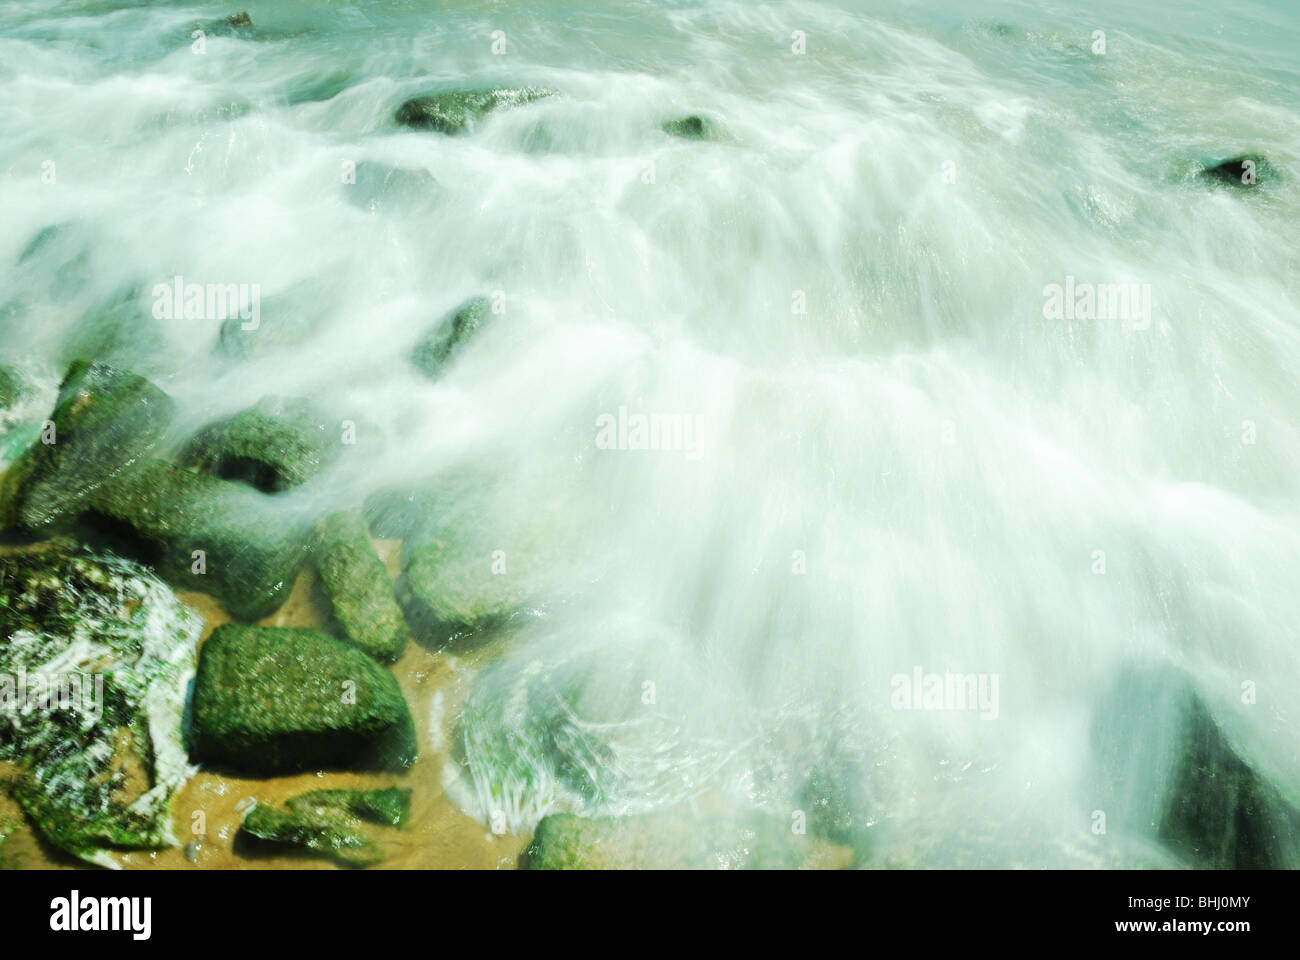 Moving water in slow shutter speed - Stock Image